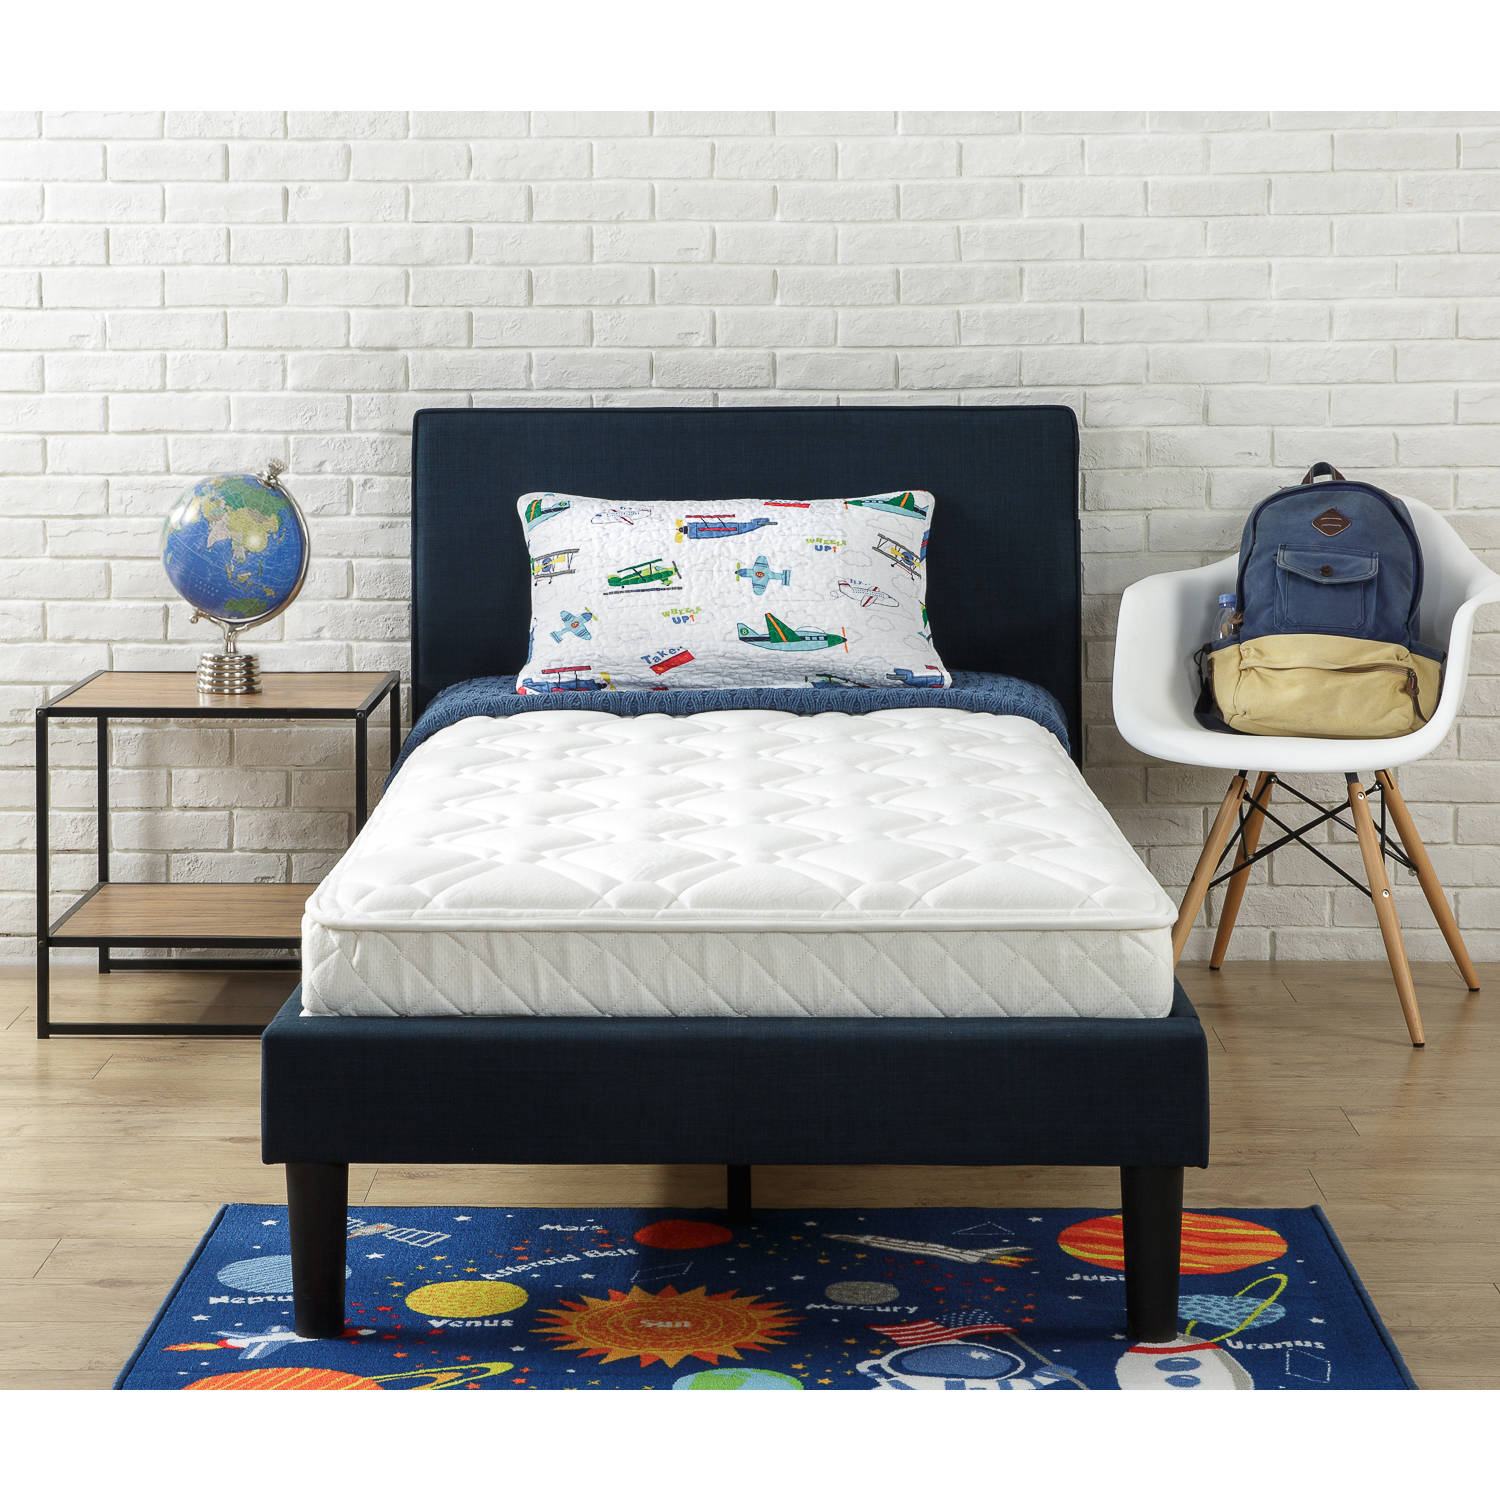 Slumber 1 Youth 6 Bunk Bed Mattress With Moisture